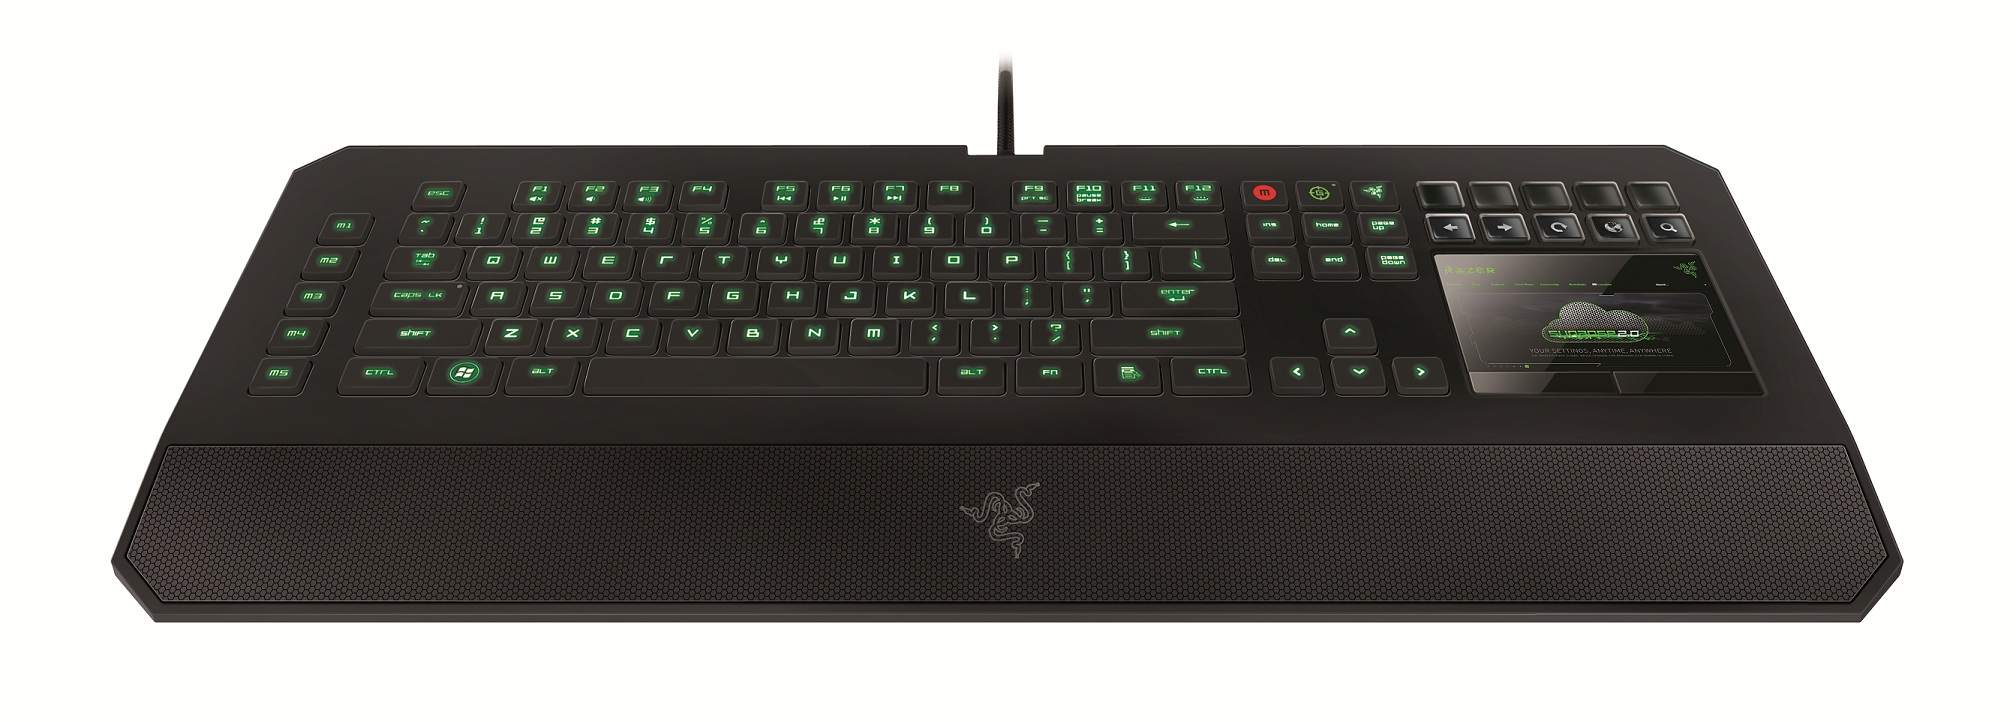 razer-deathstalker-ultimate-1.jpg